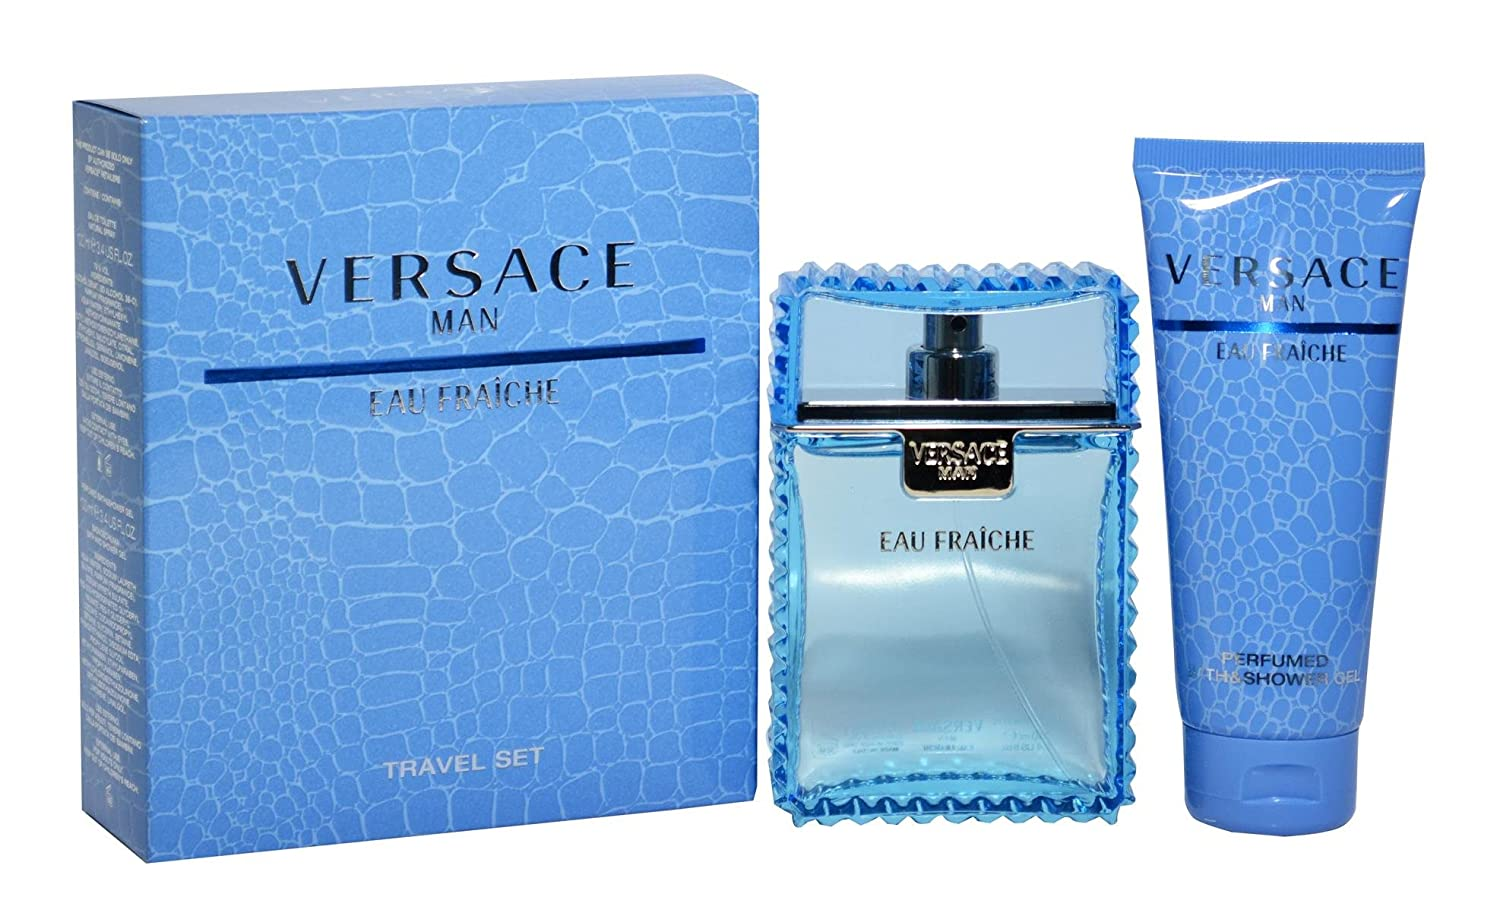 Amazon.com : Versace Eau Fraiche Men Gift Set (Eau De Toilette Spray ...